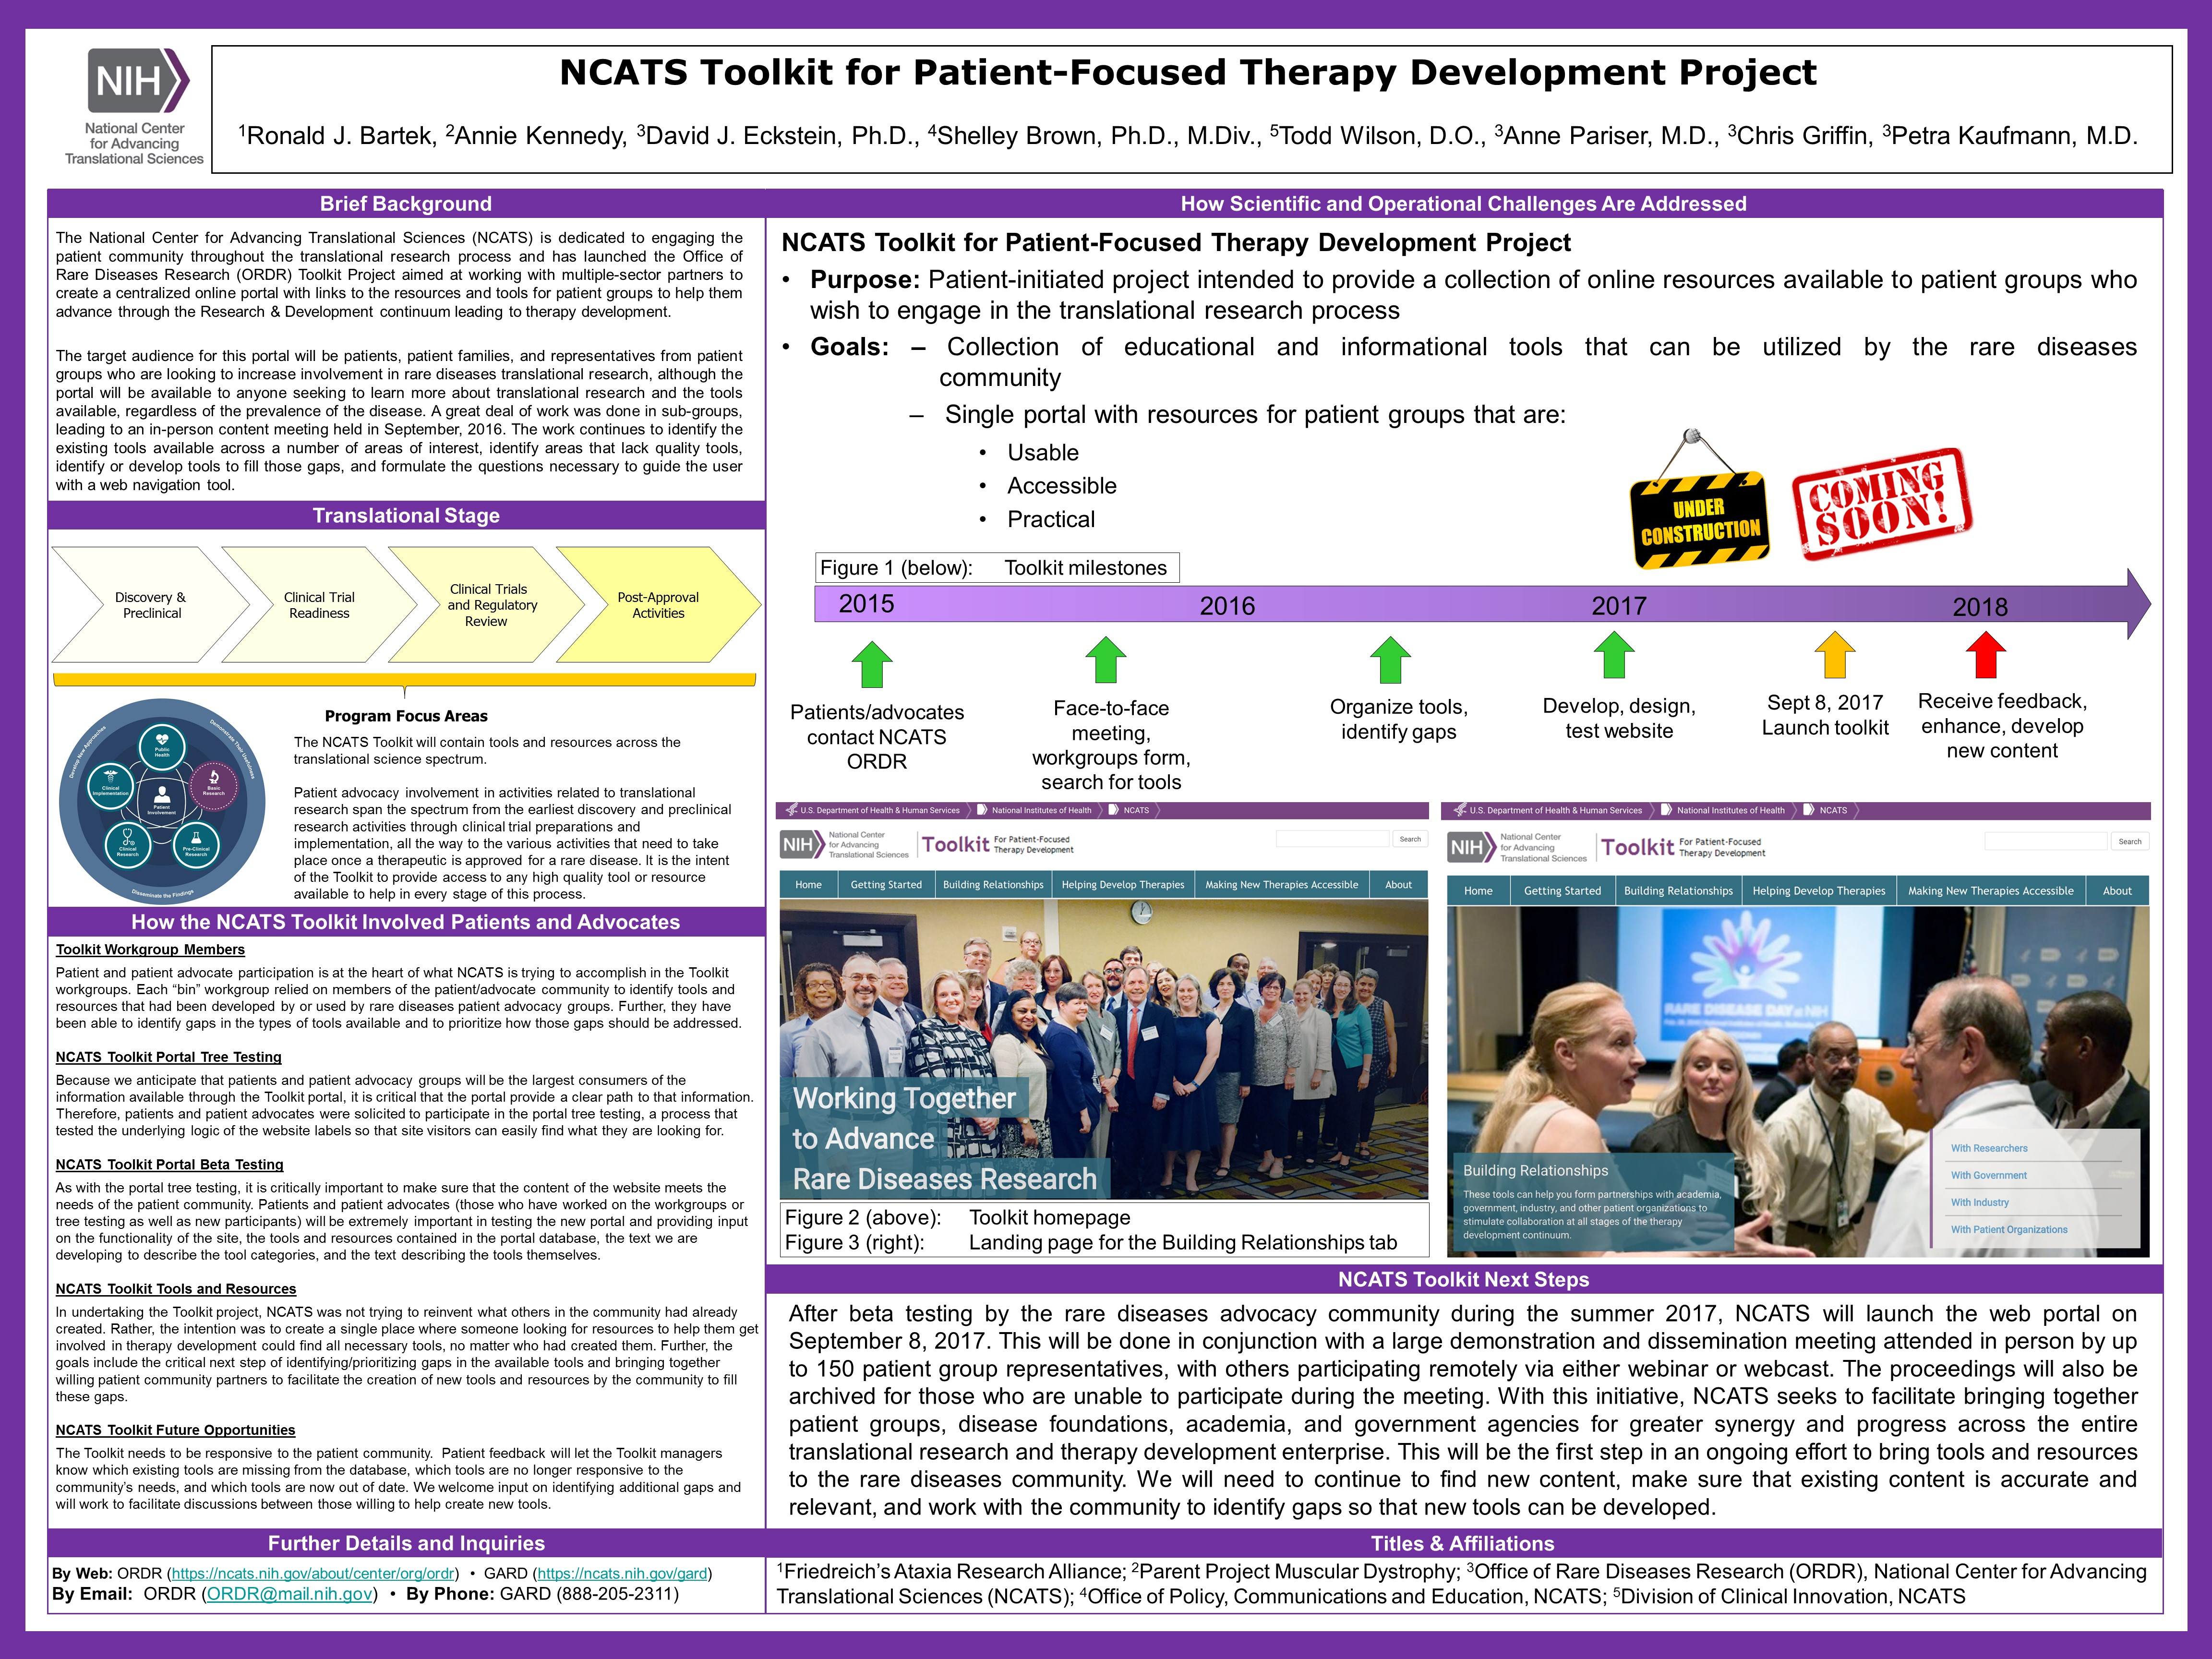 This NCATS Day poster provides background on the NCATS Toolkit for Patient-Focused Therapy Development, including goals, where it falls within the path of drug and therapeutics development and the translational science spectrum, how patients and advocates can get involved, and how NCATS addresses scientific and operational challenges.